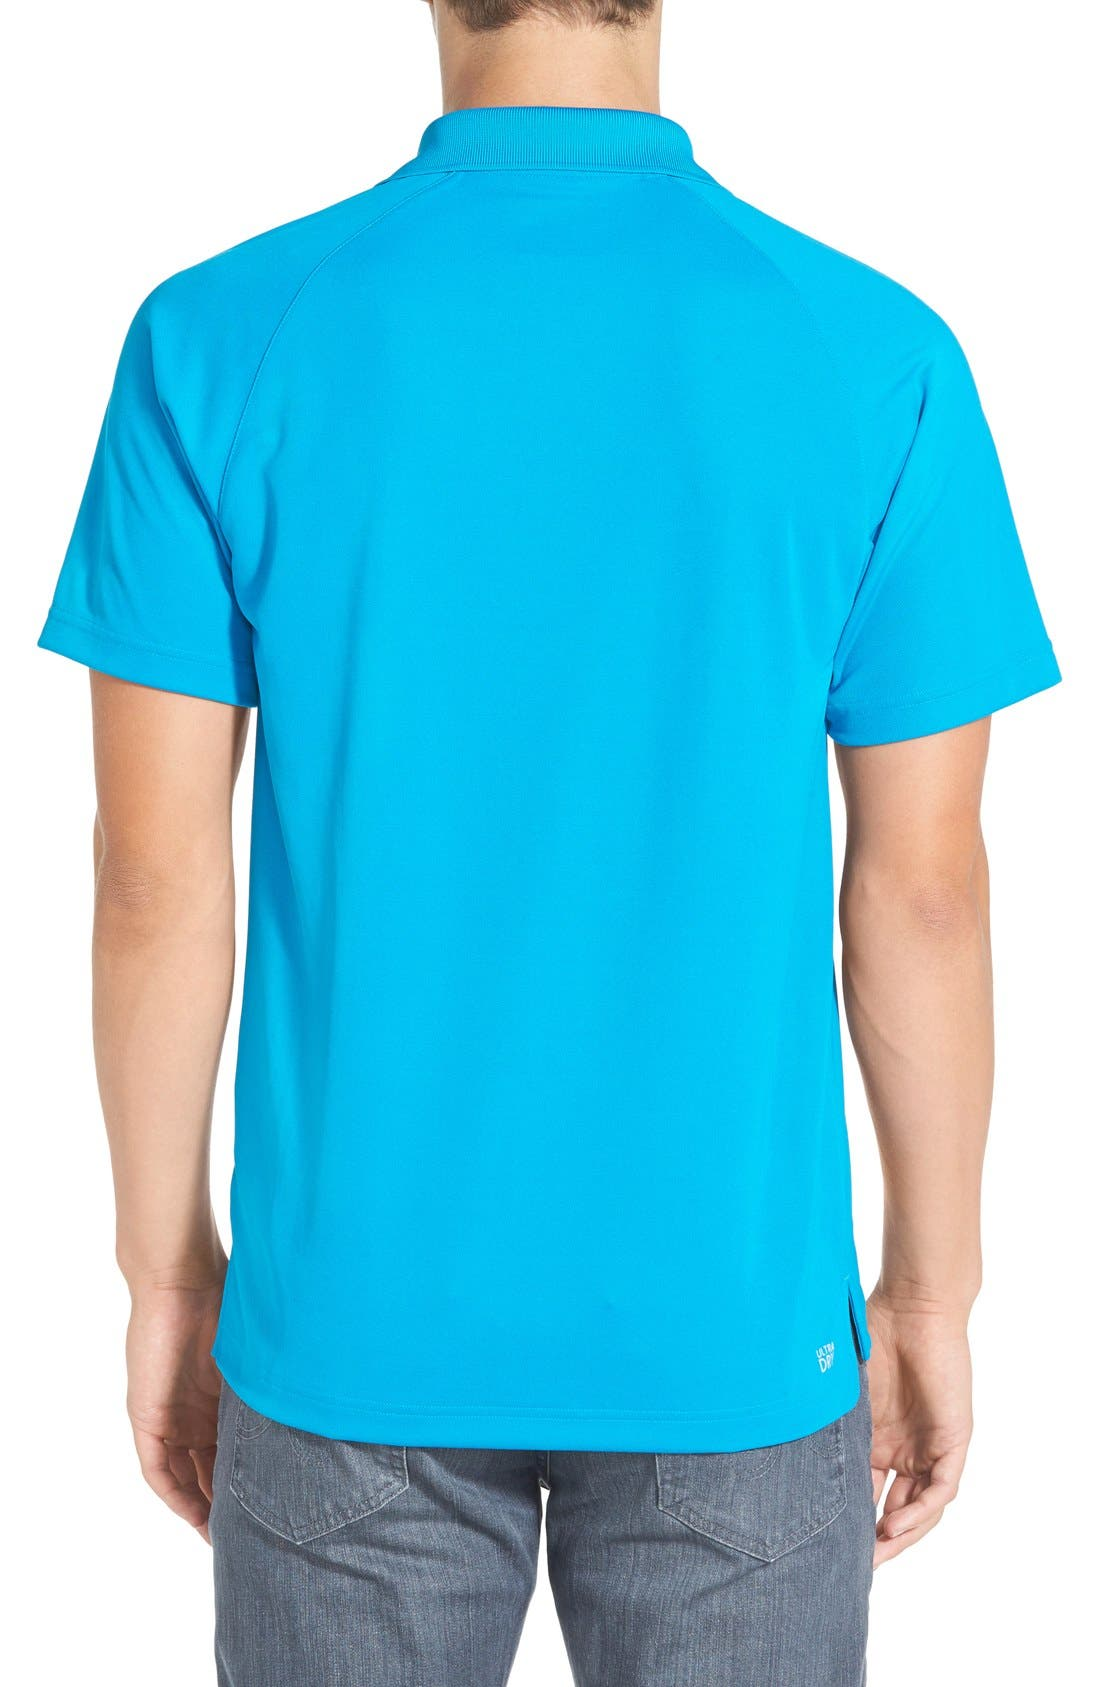 'Sport' Raglan Ultra Dry Performance Polo,                             Alternate thumbnail 2, color,                             Santorino Blue